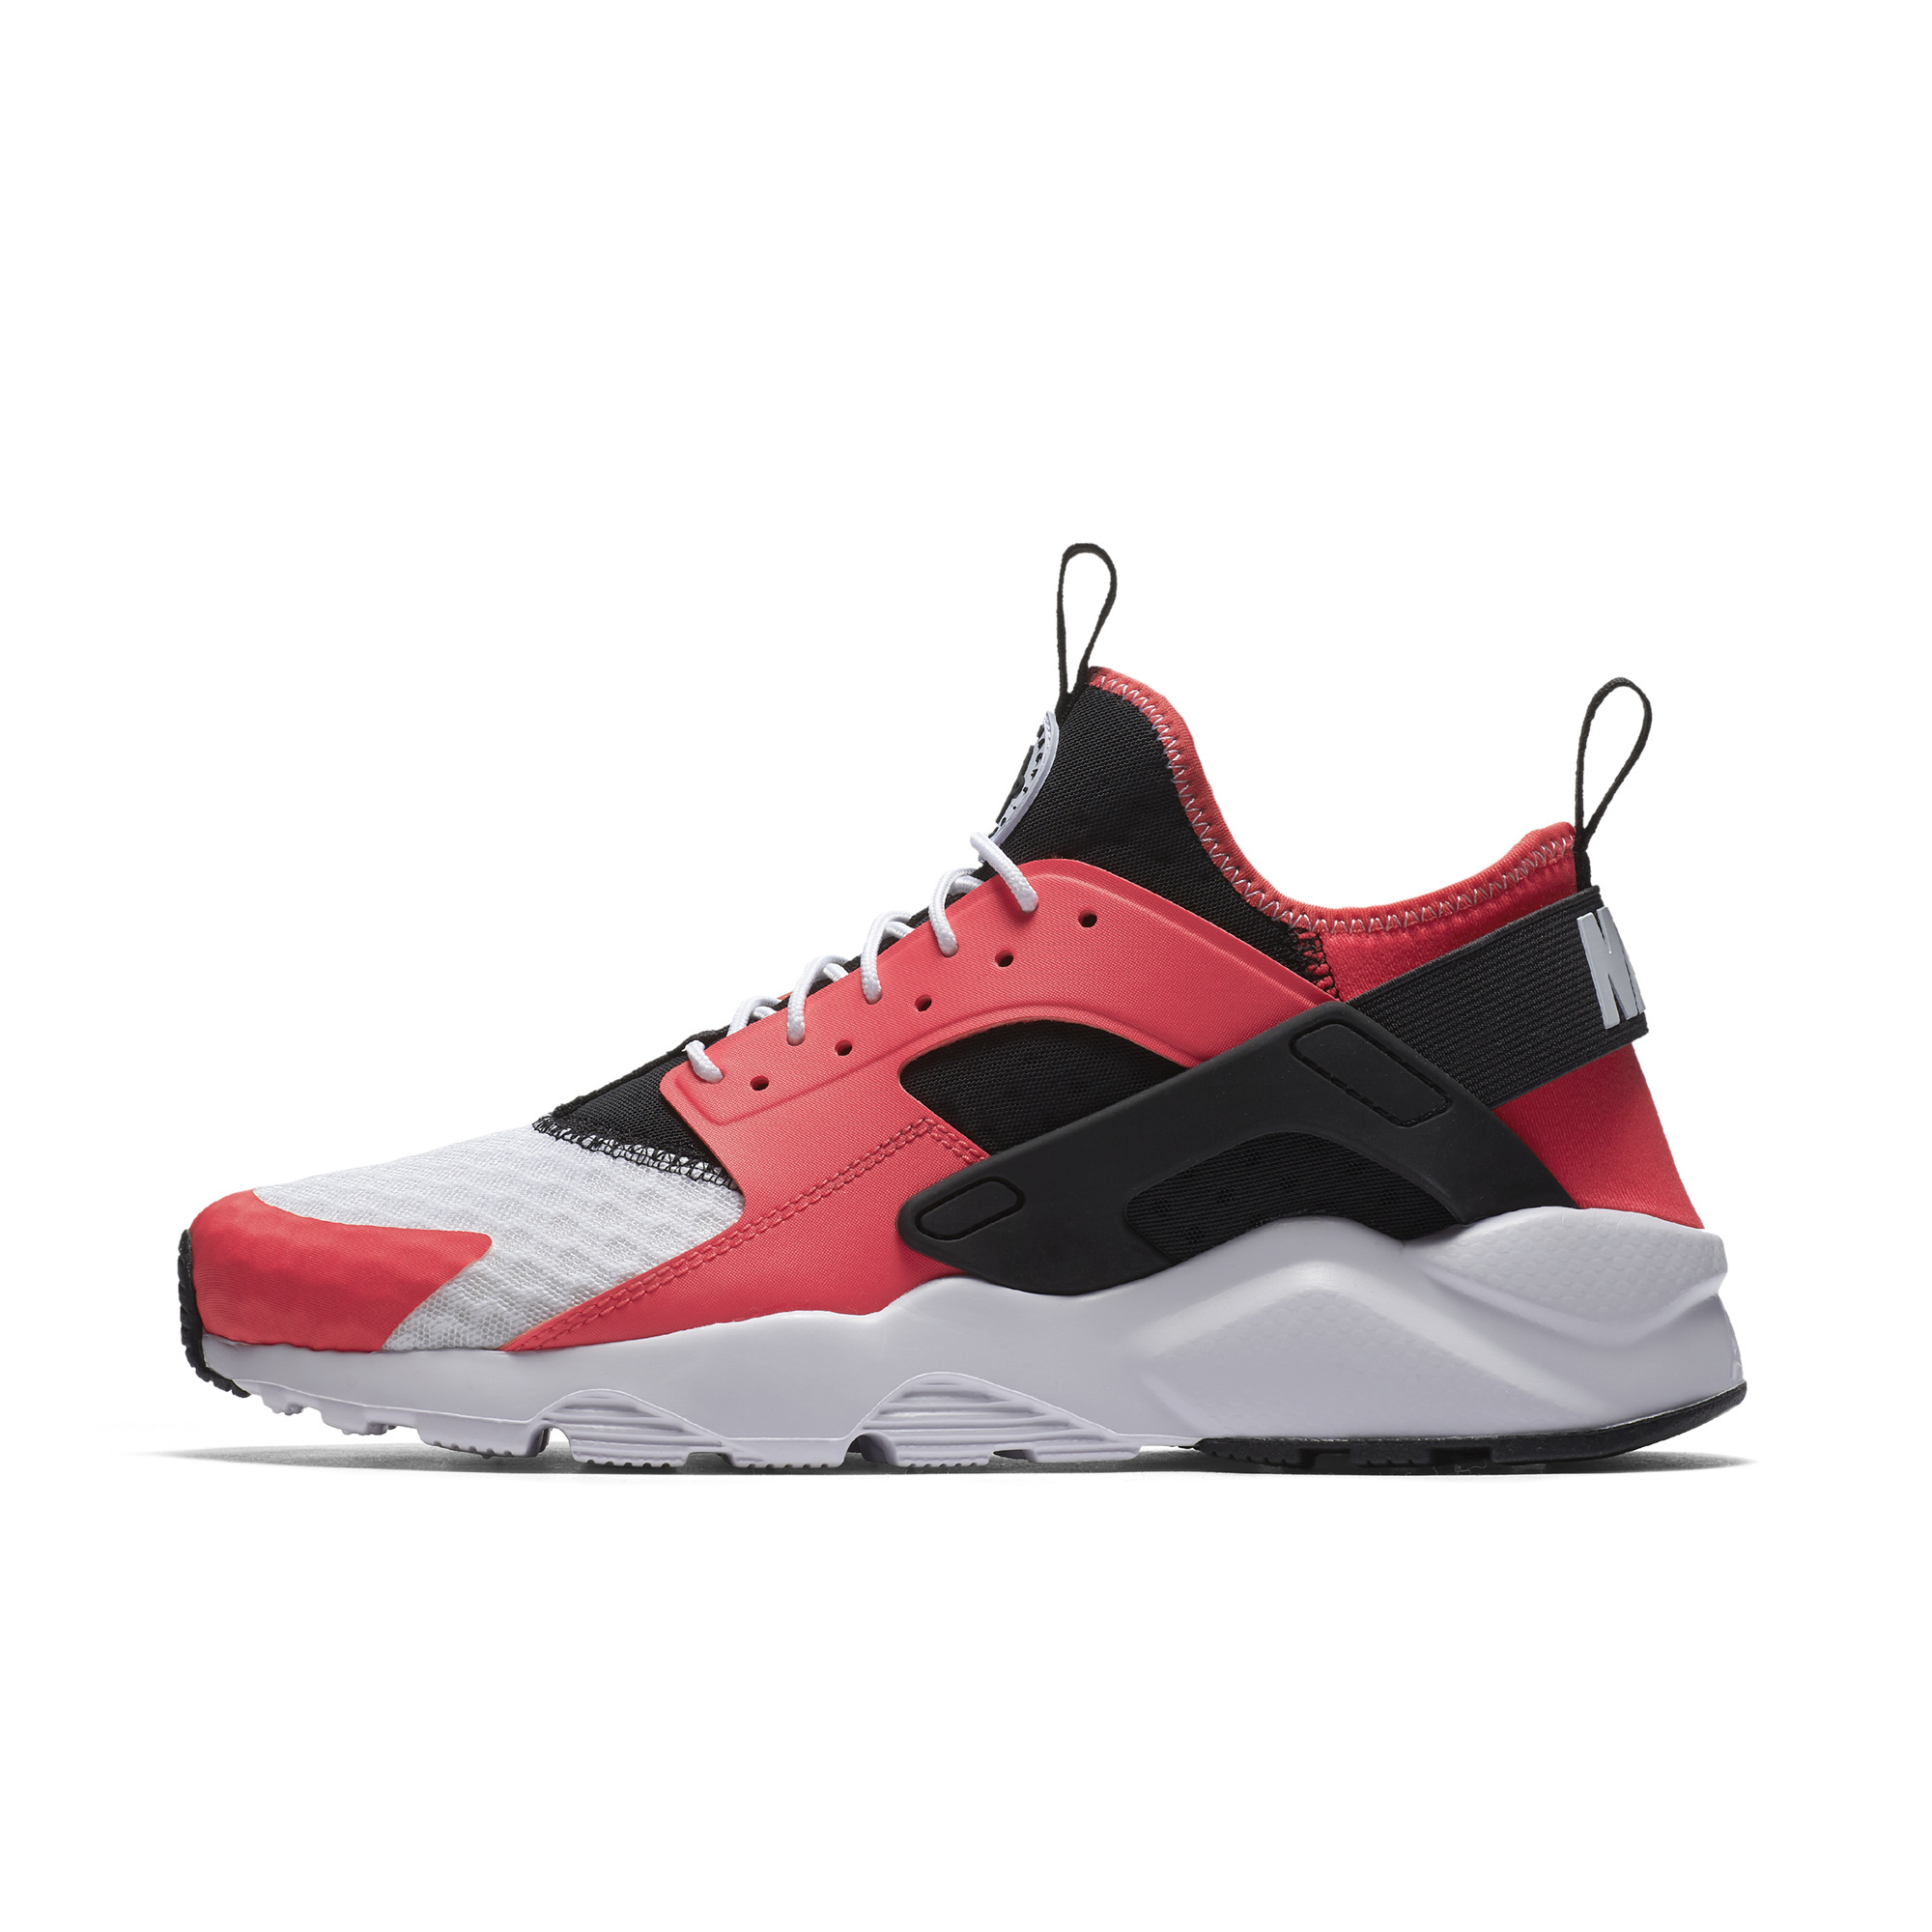 f798db6e6da Original Official NIKE AIR HUARACHE RUN ULTRA Men s Running Shoes Sneakers  819685 Outdoor Ultra Boost Athletic Durable 819685-in Running Shoes from  Sports ...